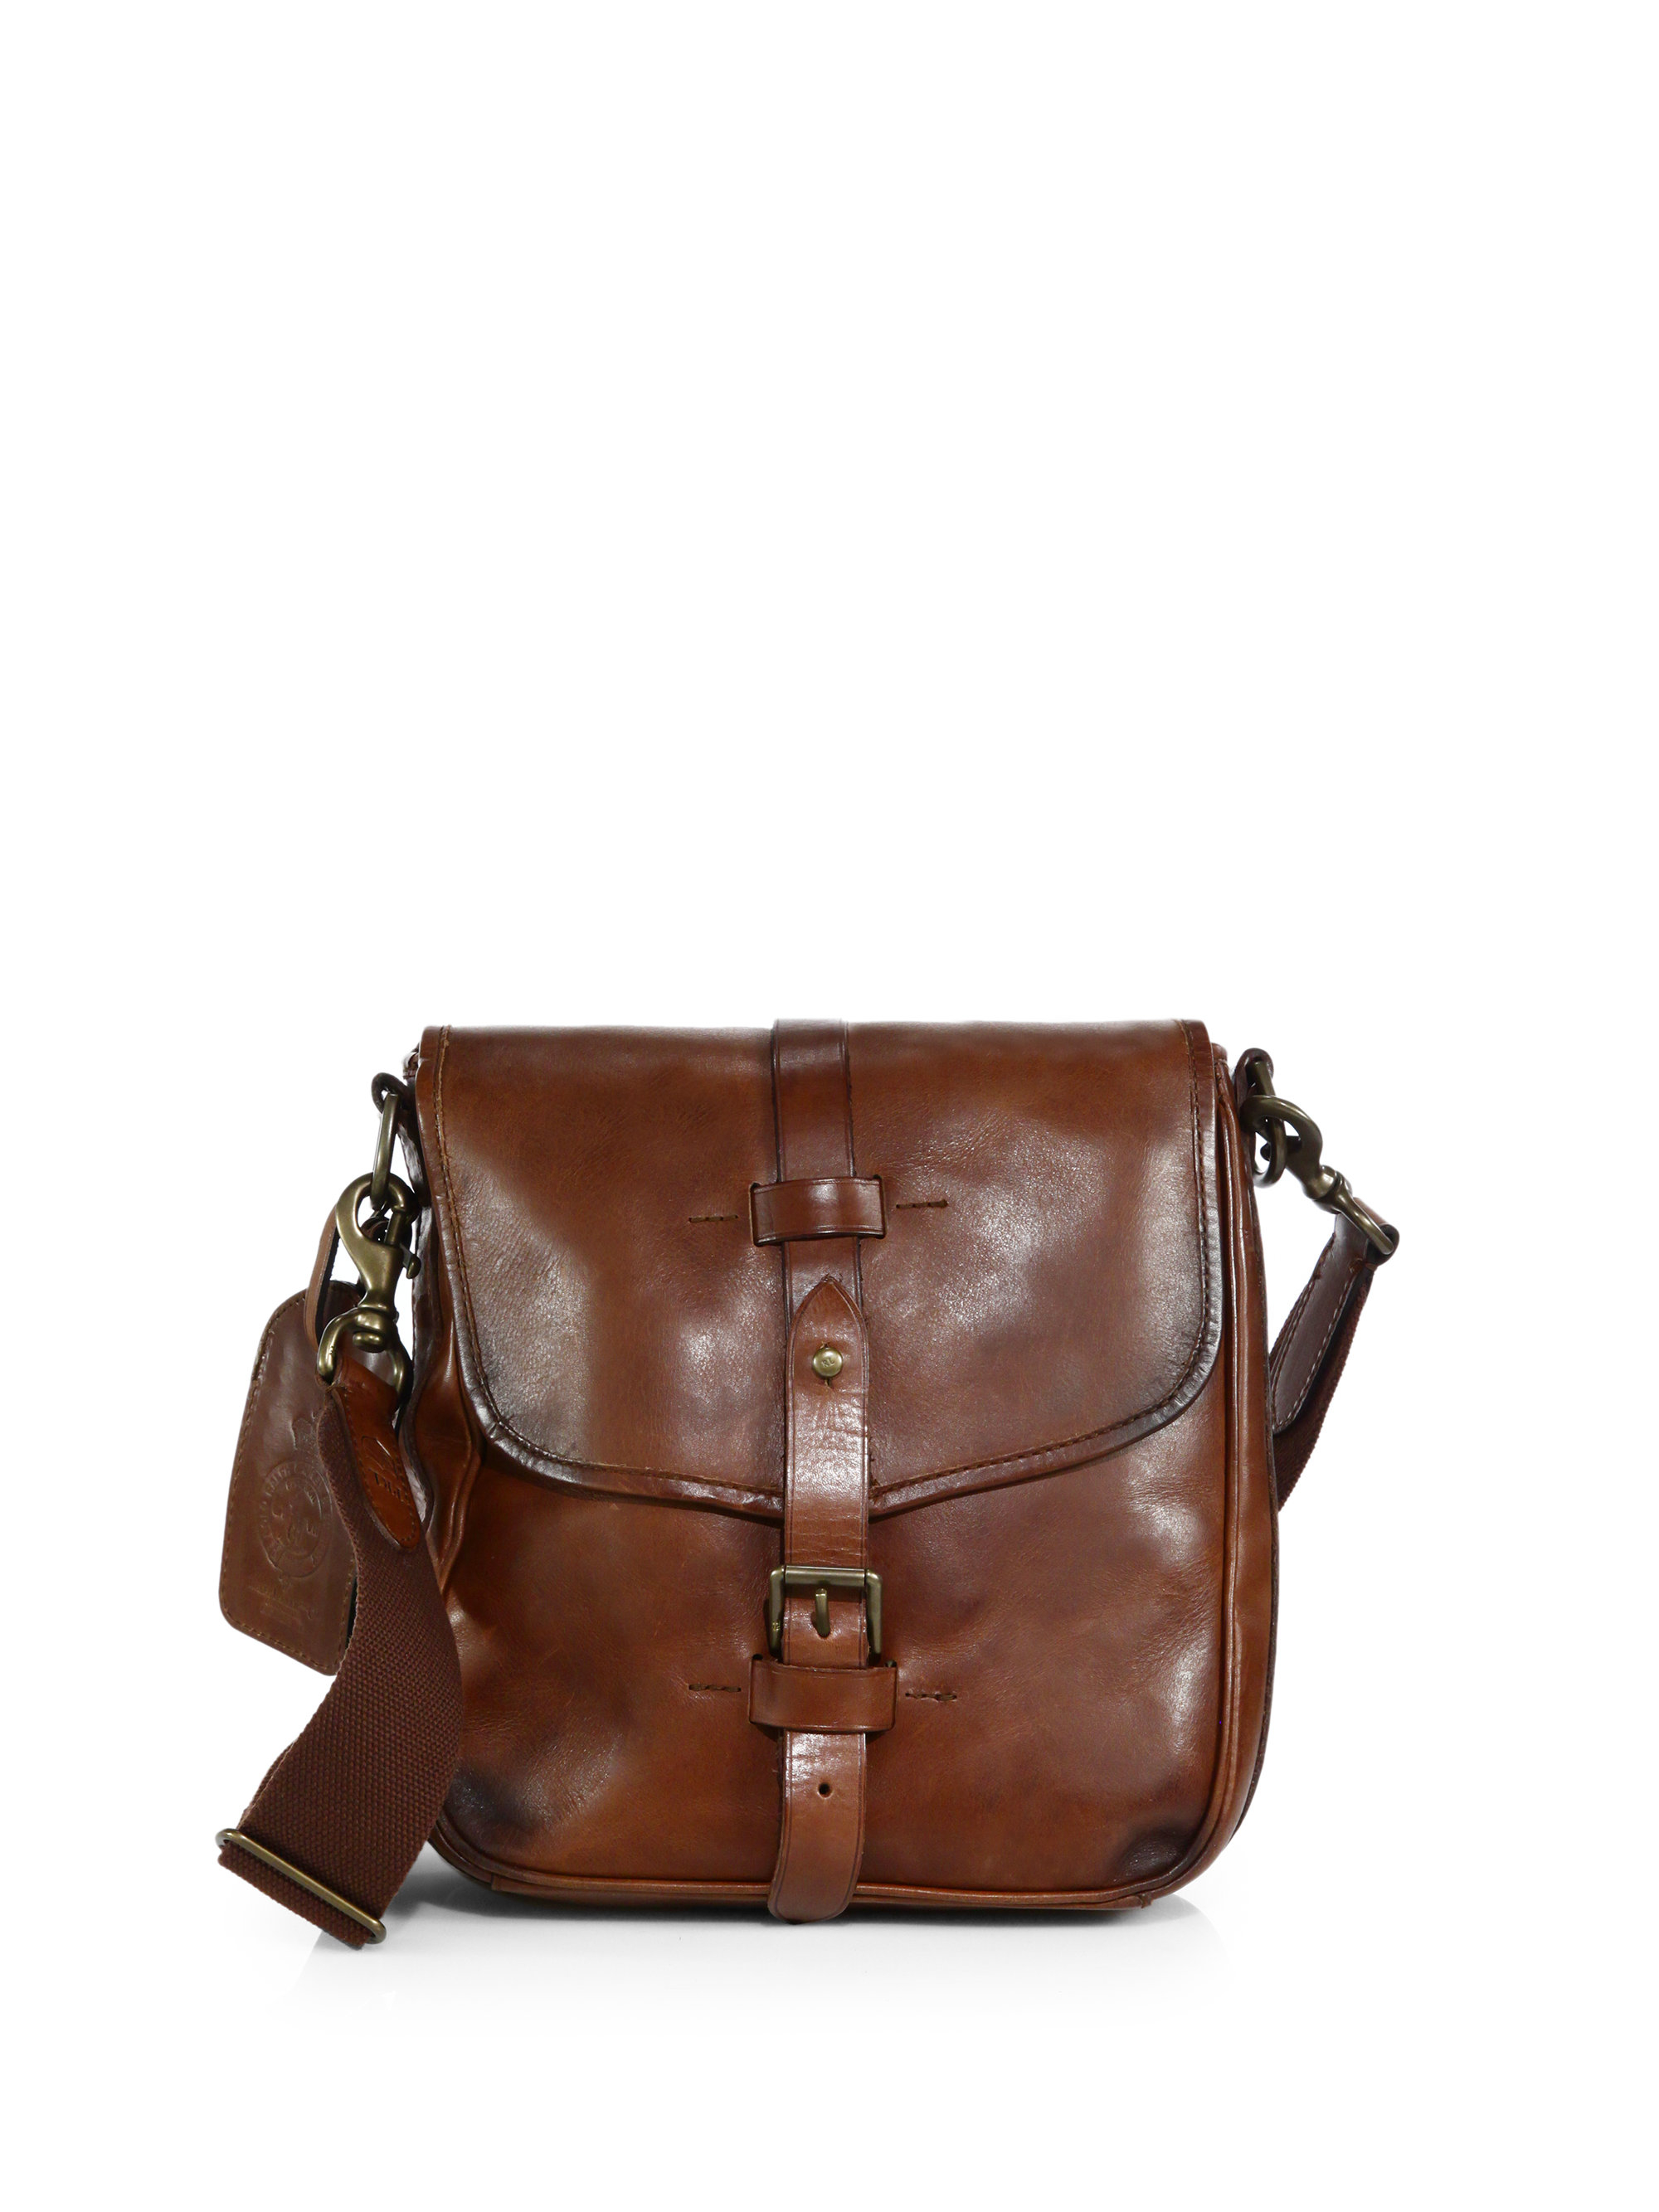 ... australia lyst polo ralph lauren leather camera bag in brown for men  02fc4 f6d88 ba048775d067a